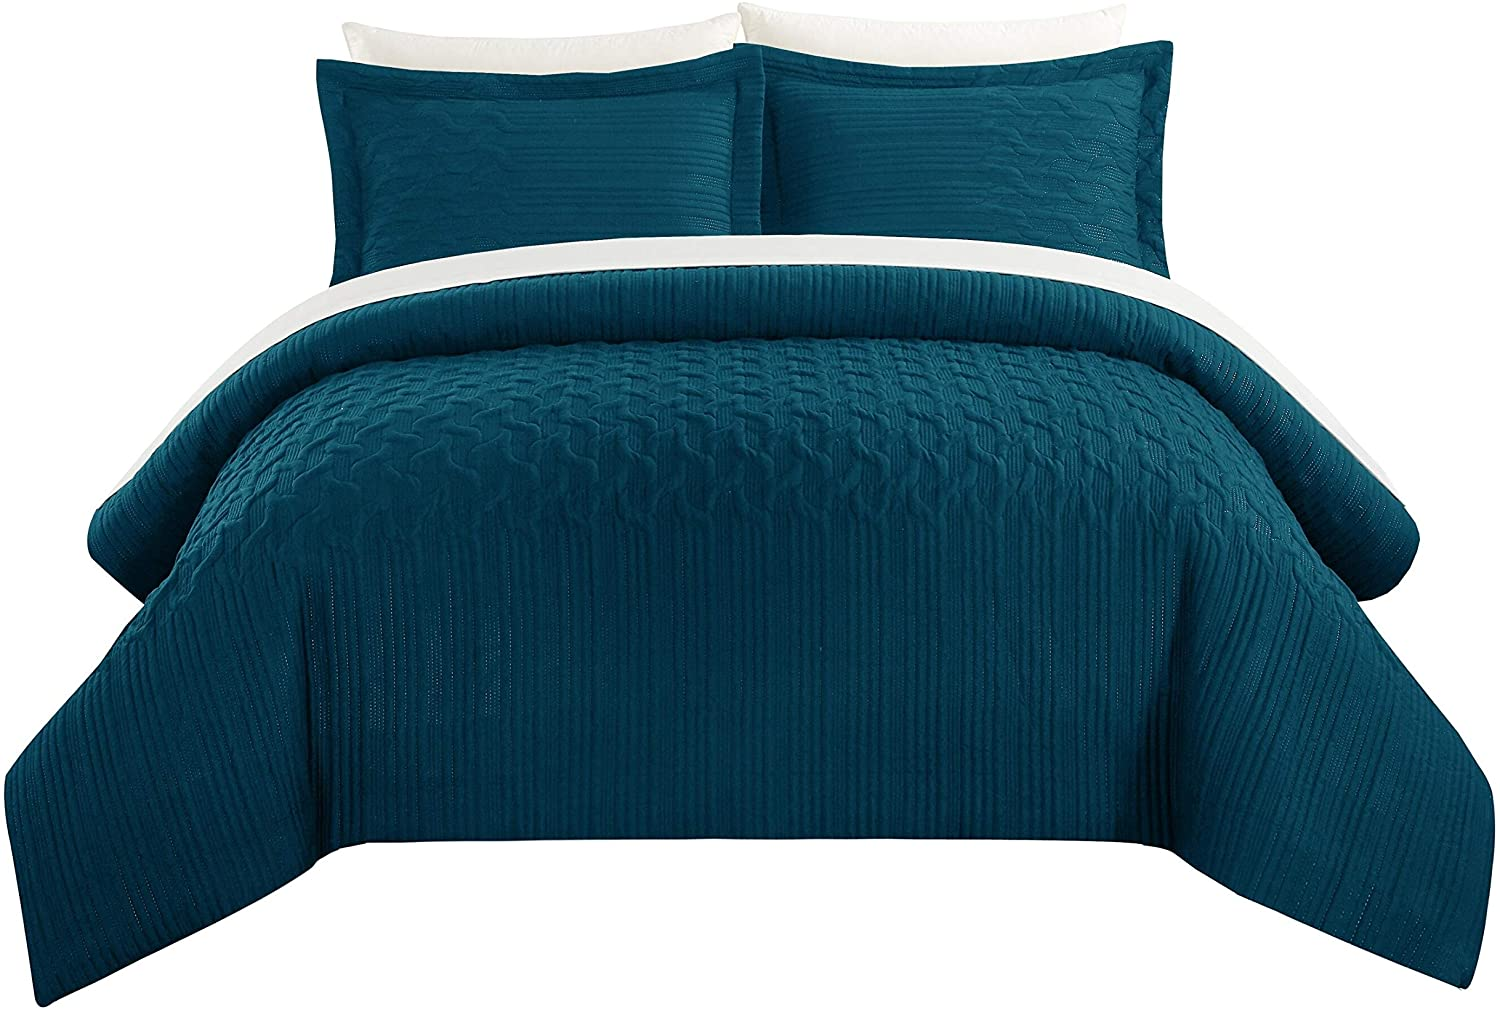 Comforter Set Embossed Quilted Vine Pattern King Blue Embroidered Modern Contemporary Microfiber 2